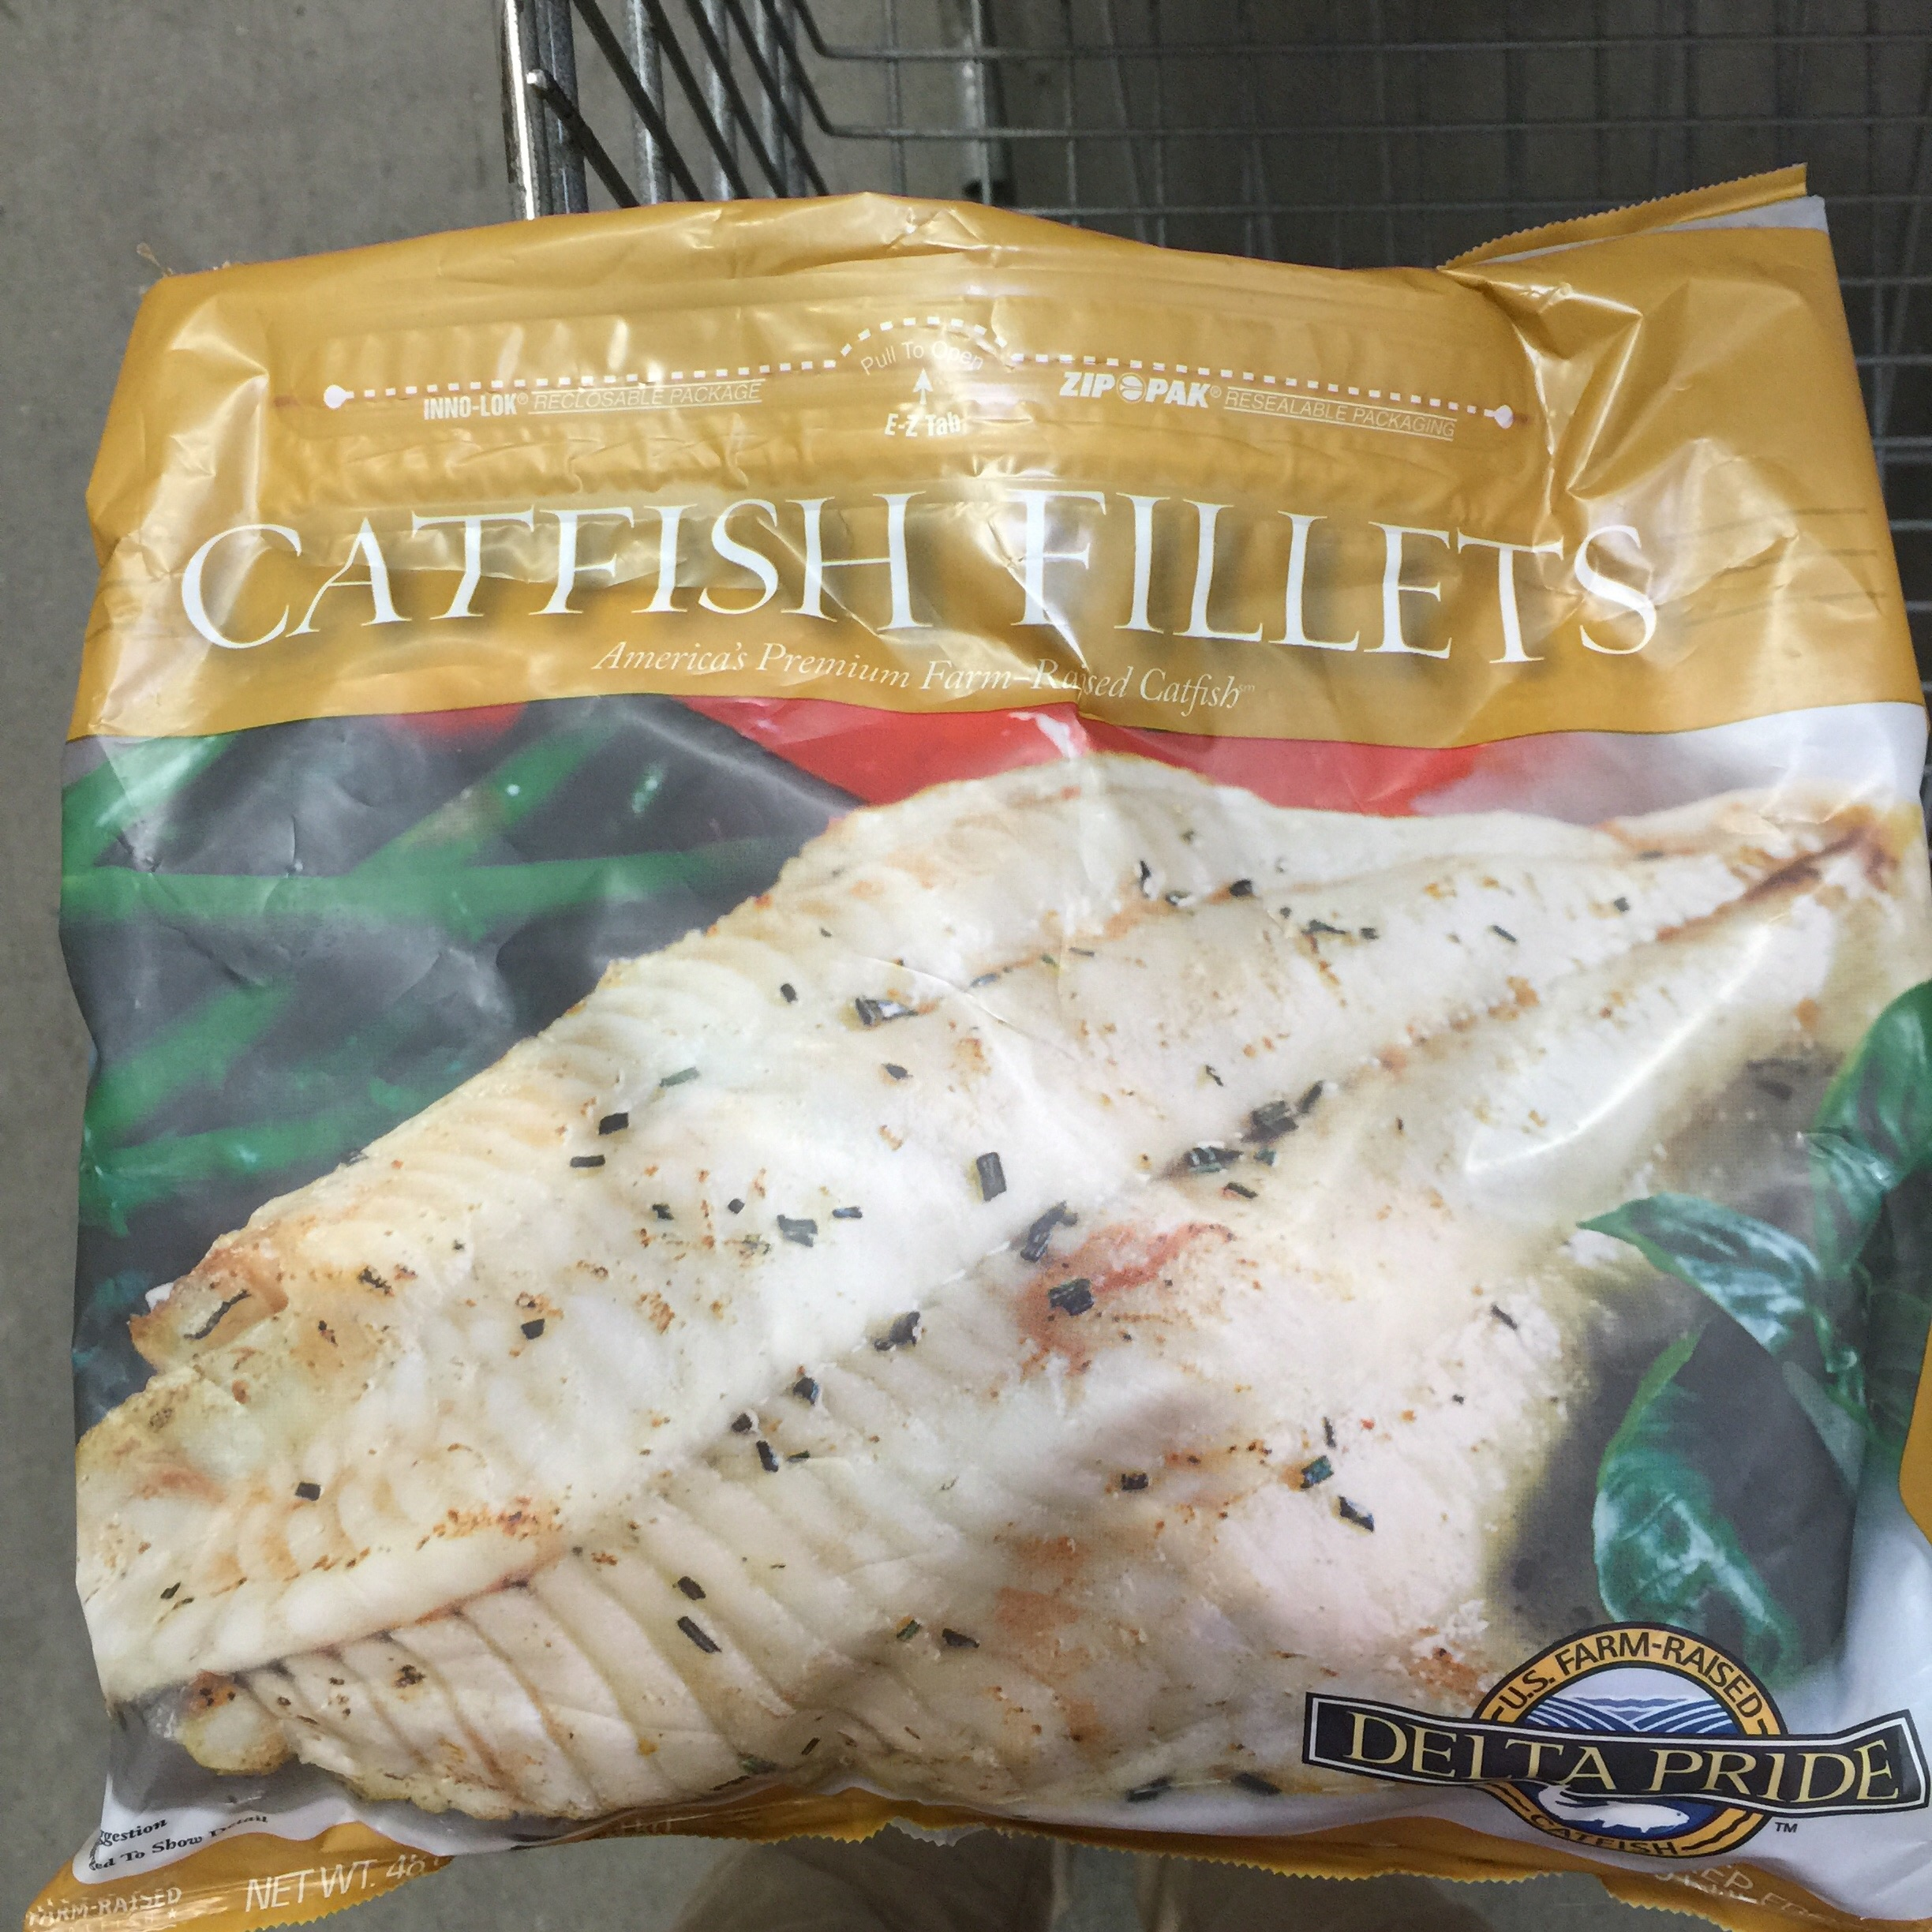 Delta Pride Catfish package at Sam's Club.